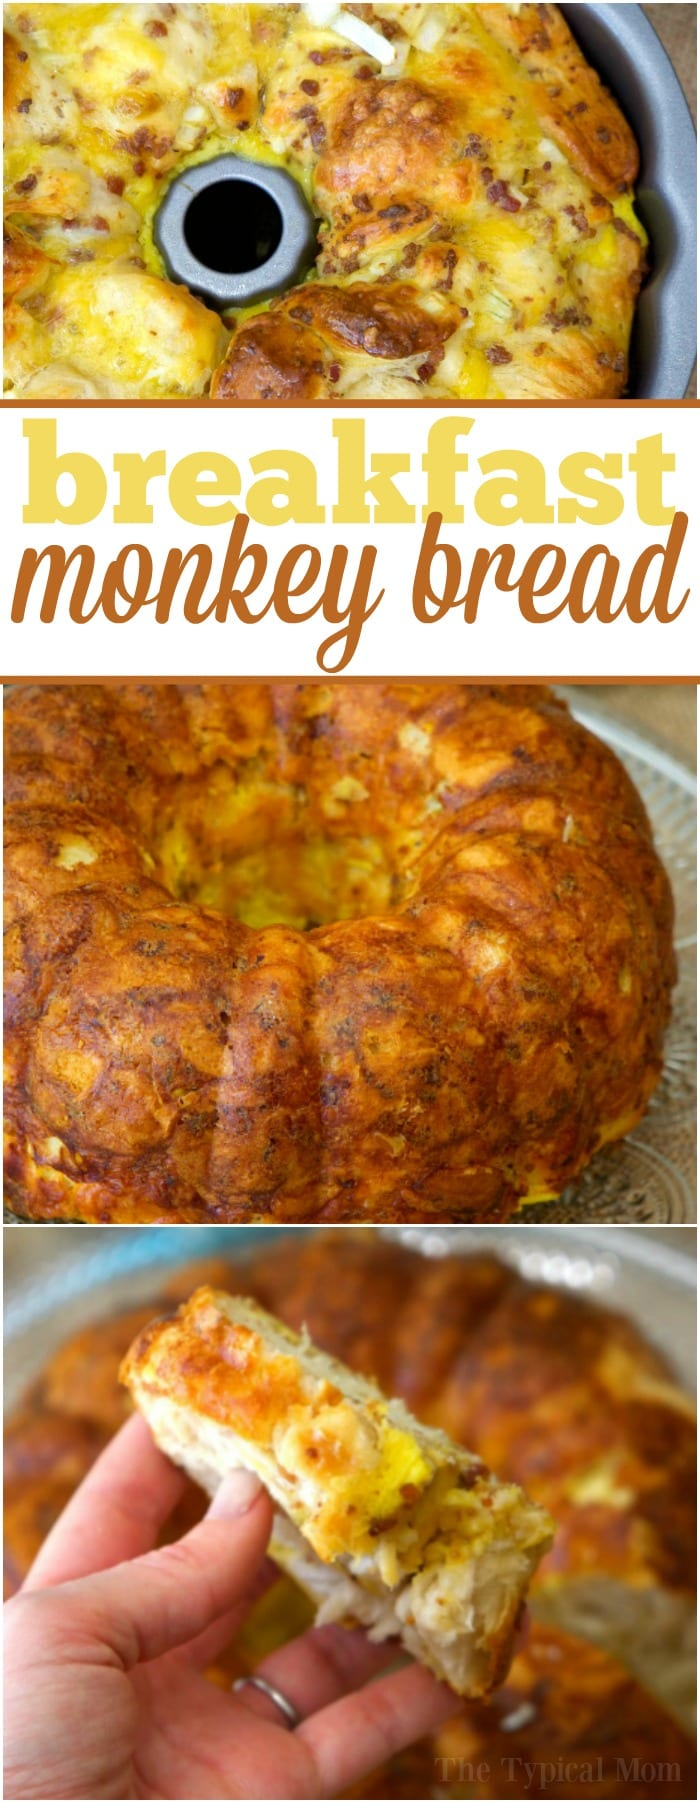 This bacon egg and cheese breakfast bundt cake tastes amazing and is so easy to make!! If you've never thought of making a bundt cake breakfast it is sure to be a hit during the holidays. A pretty way to present your favorite breakfast items and a great way to take breakfast on the go. #breakfast #bundtcake #cake #bread #bacon #egg #cheese #biscuits